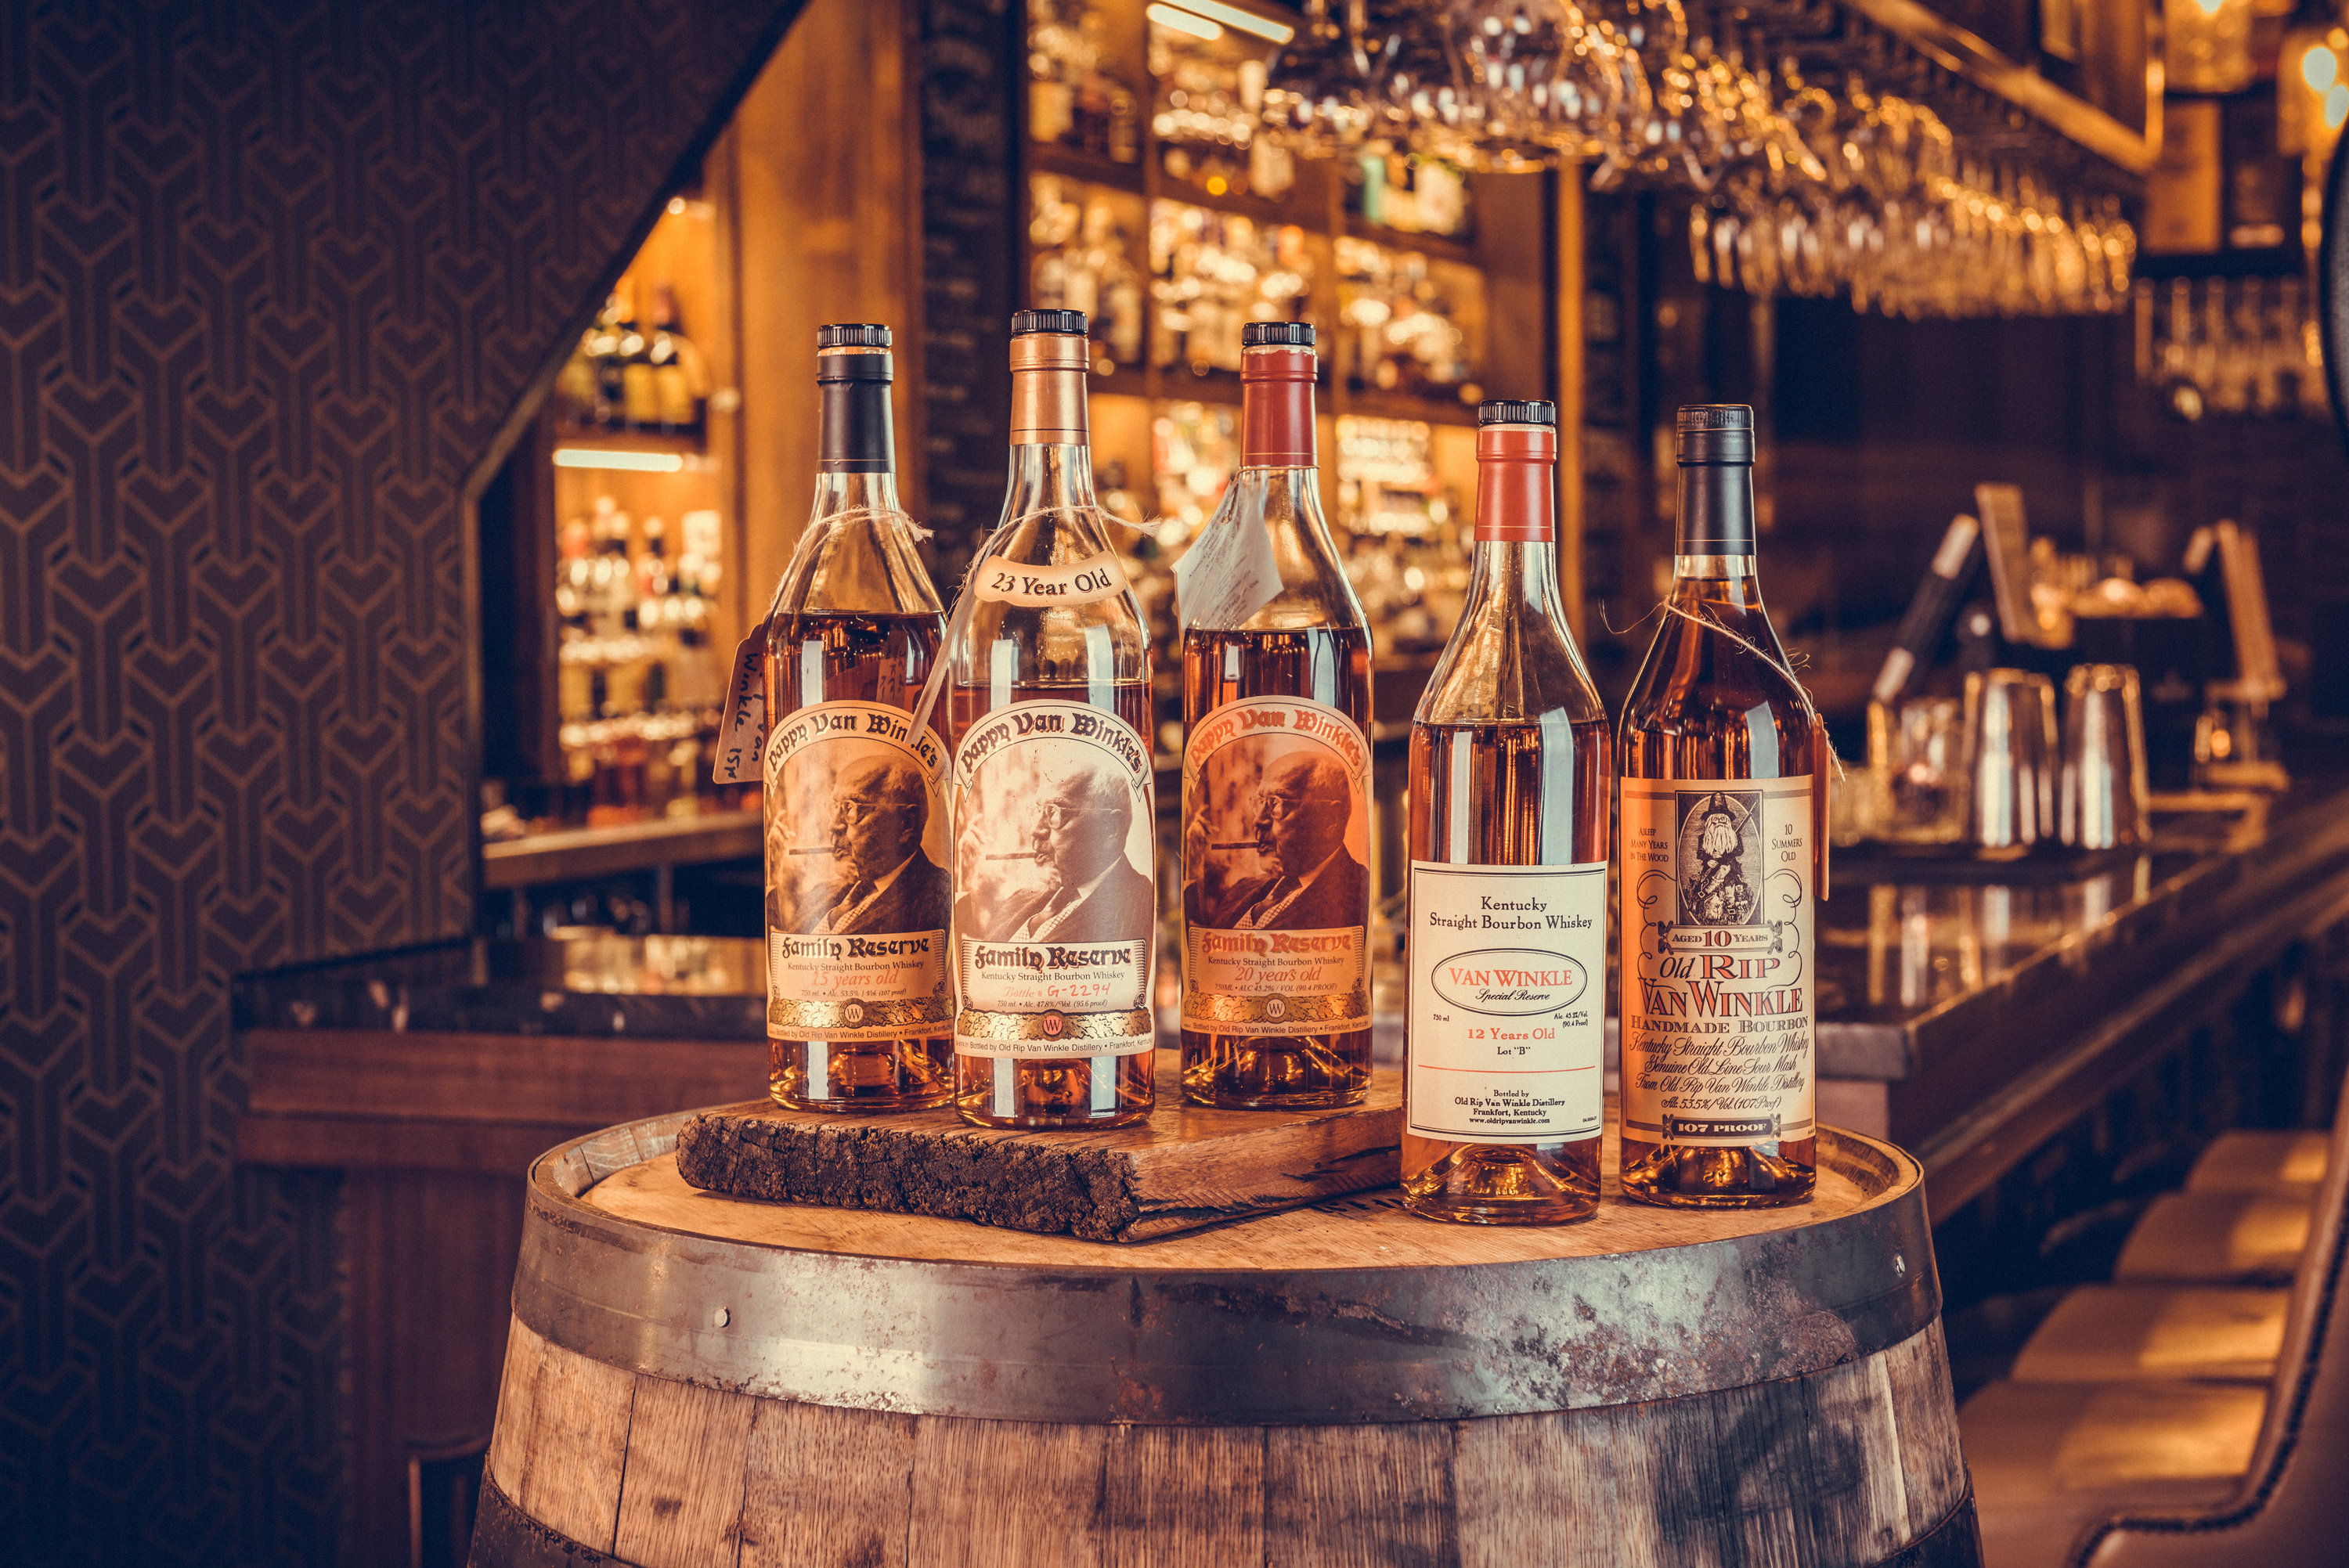 Pappy Van Winkle collection at Webster's Commercial